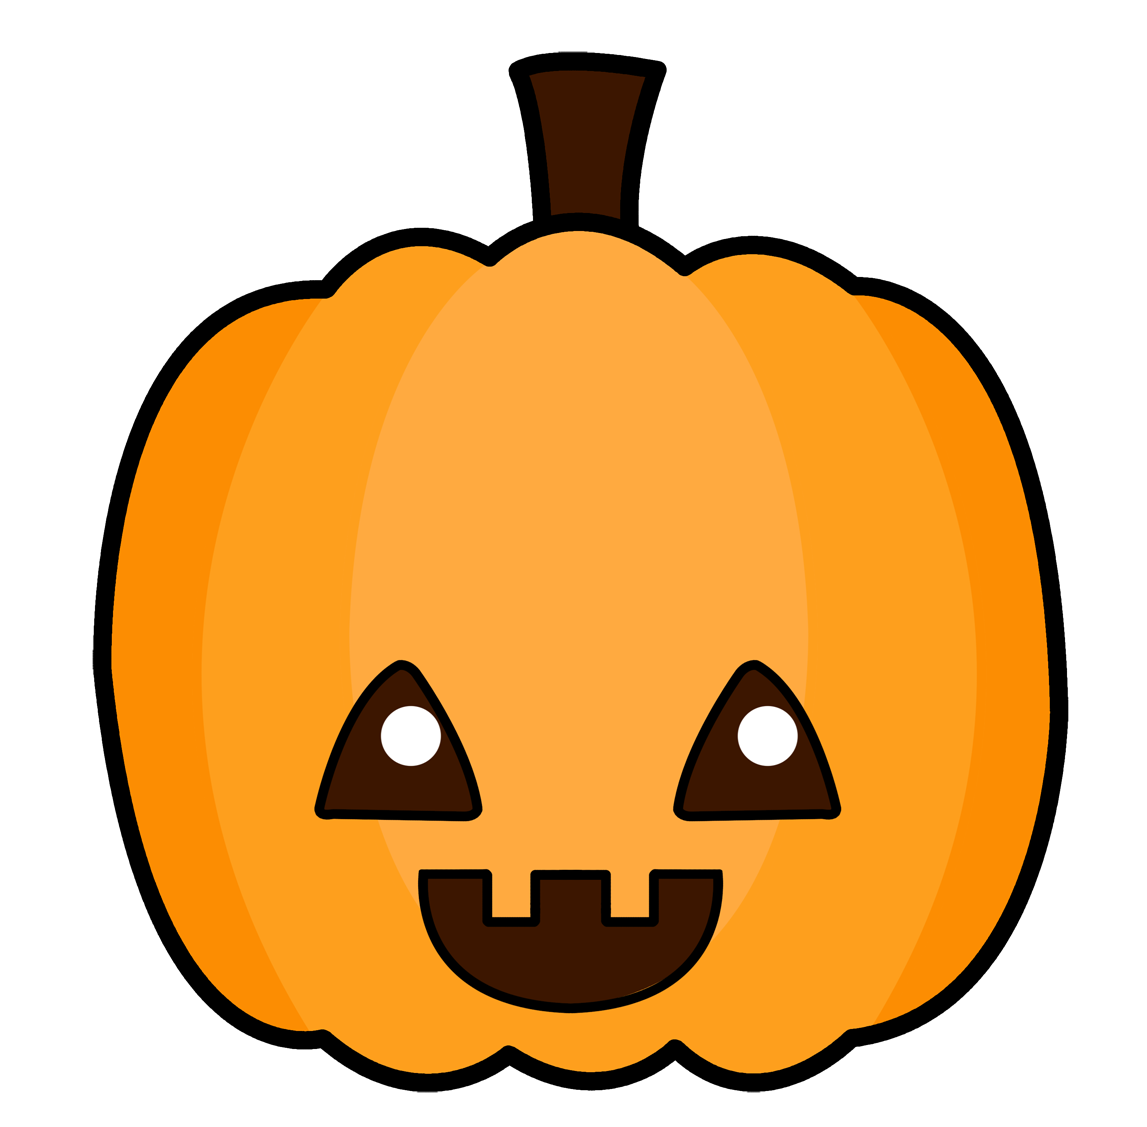 Cute Halloween Pumpkin Clip Art | Free Internet Pictures